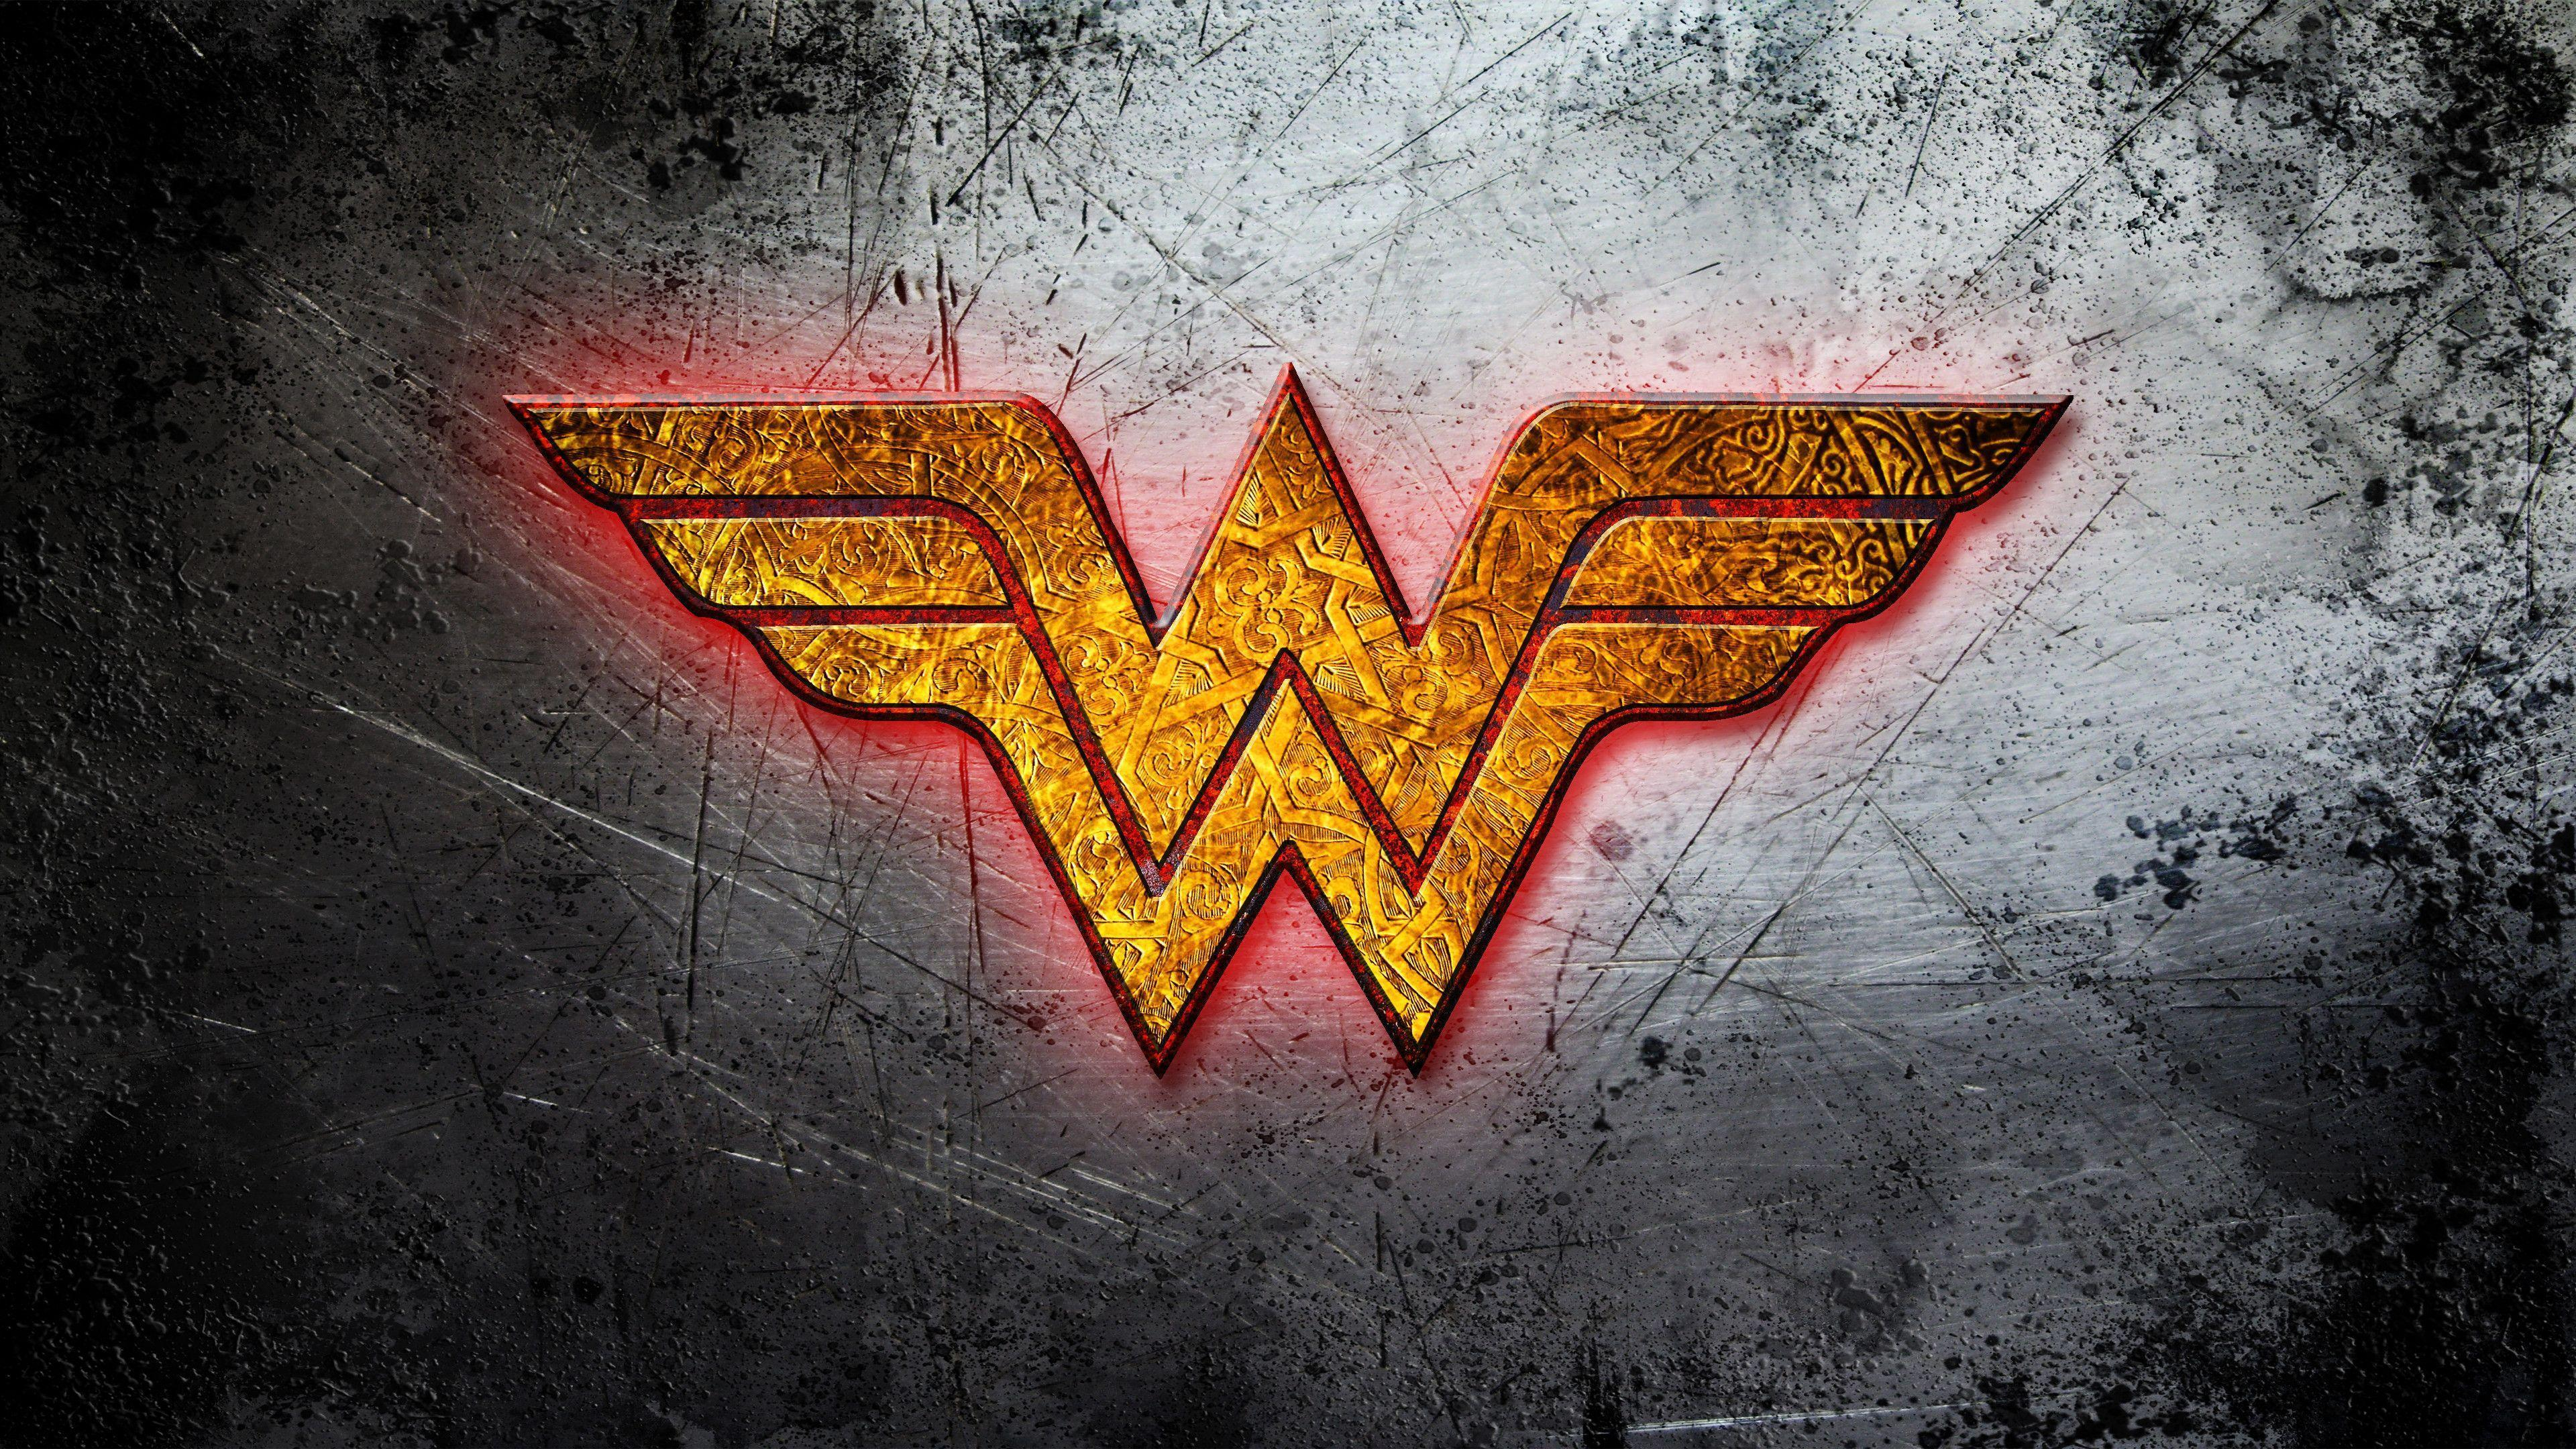 central wallpaper wonder woman - photo #32